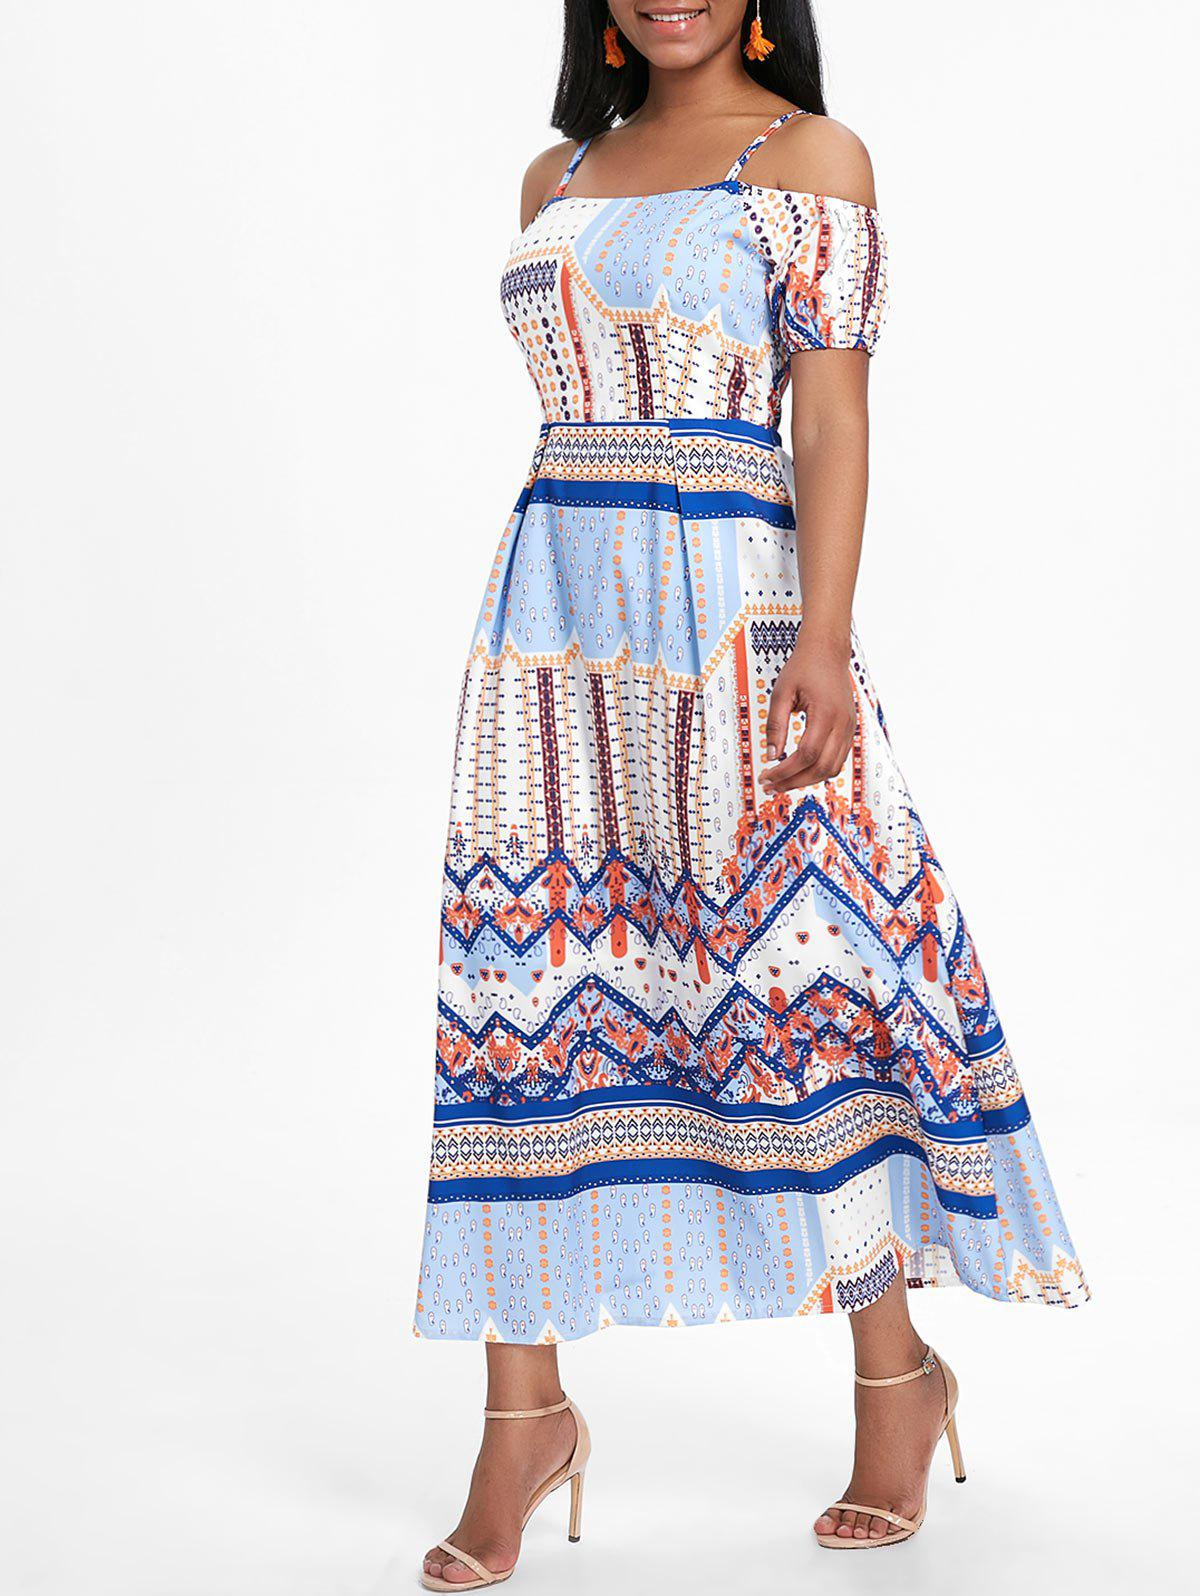 New Bohemian Cold Shoulder Midi Cami Dress